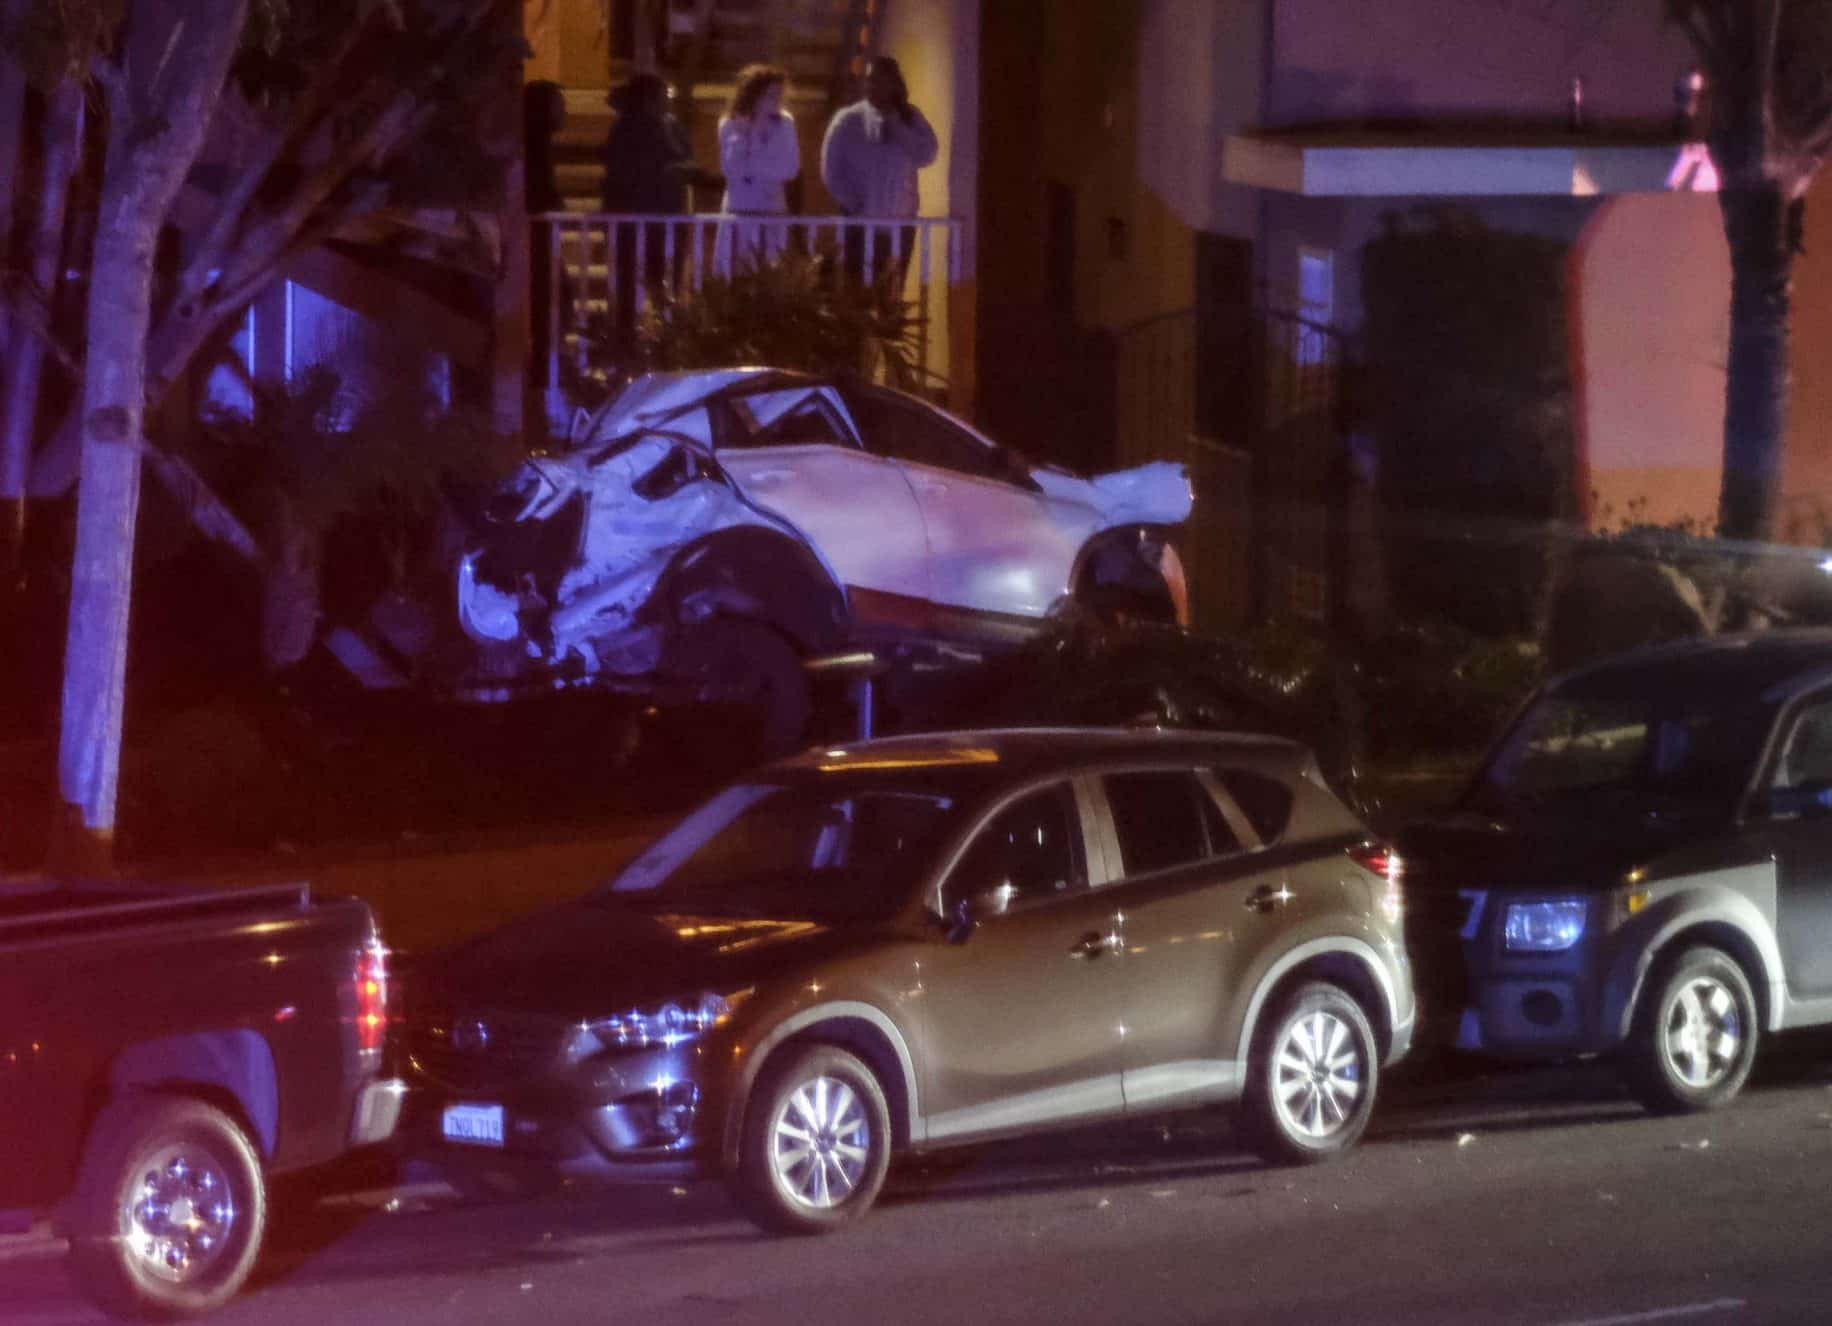 Driver found unconscious after high-speed crash into parked